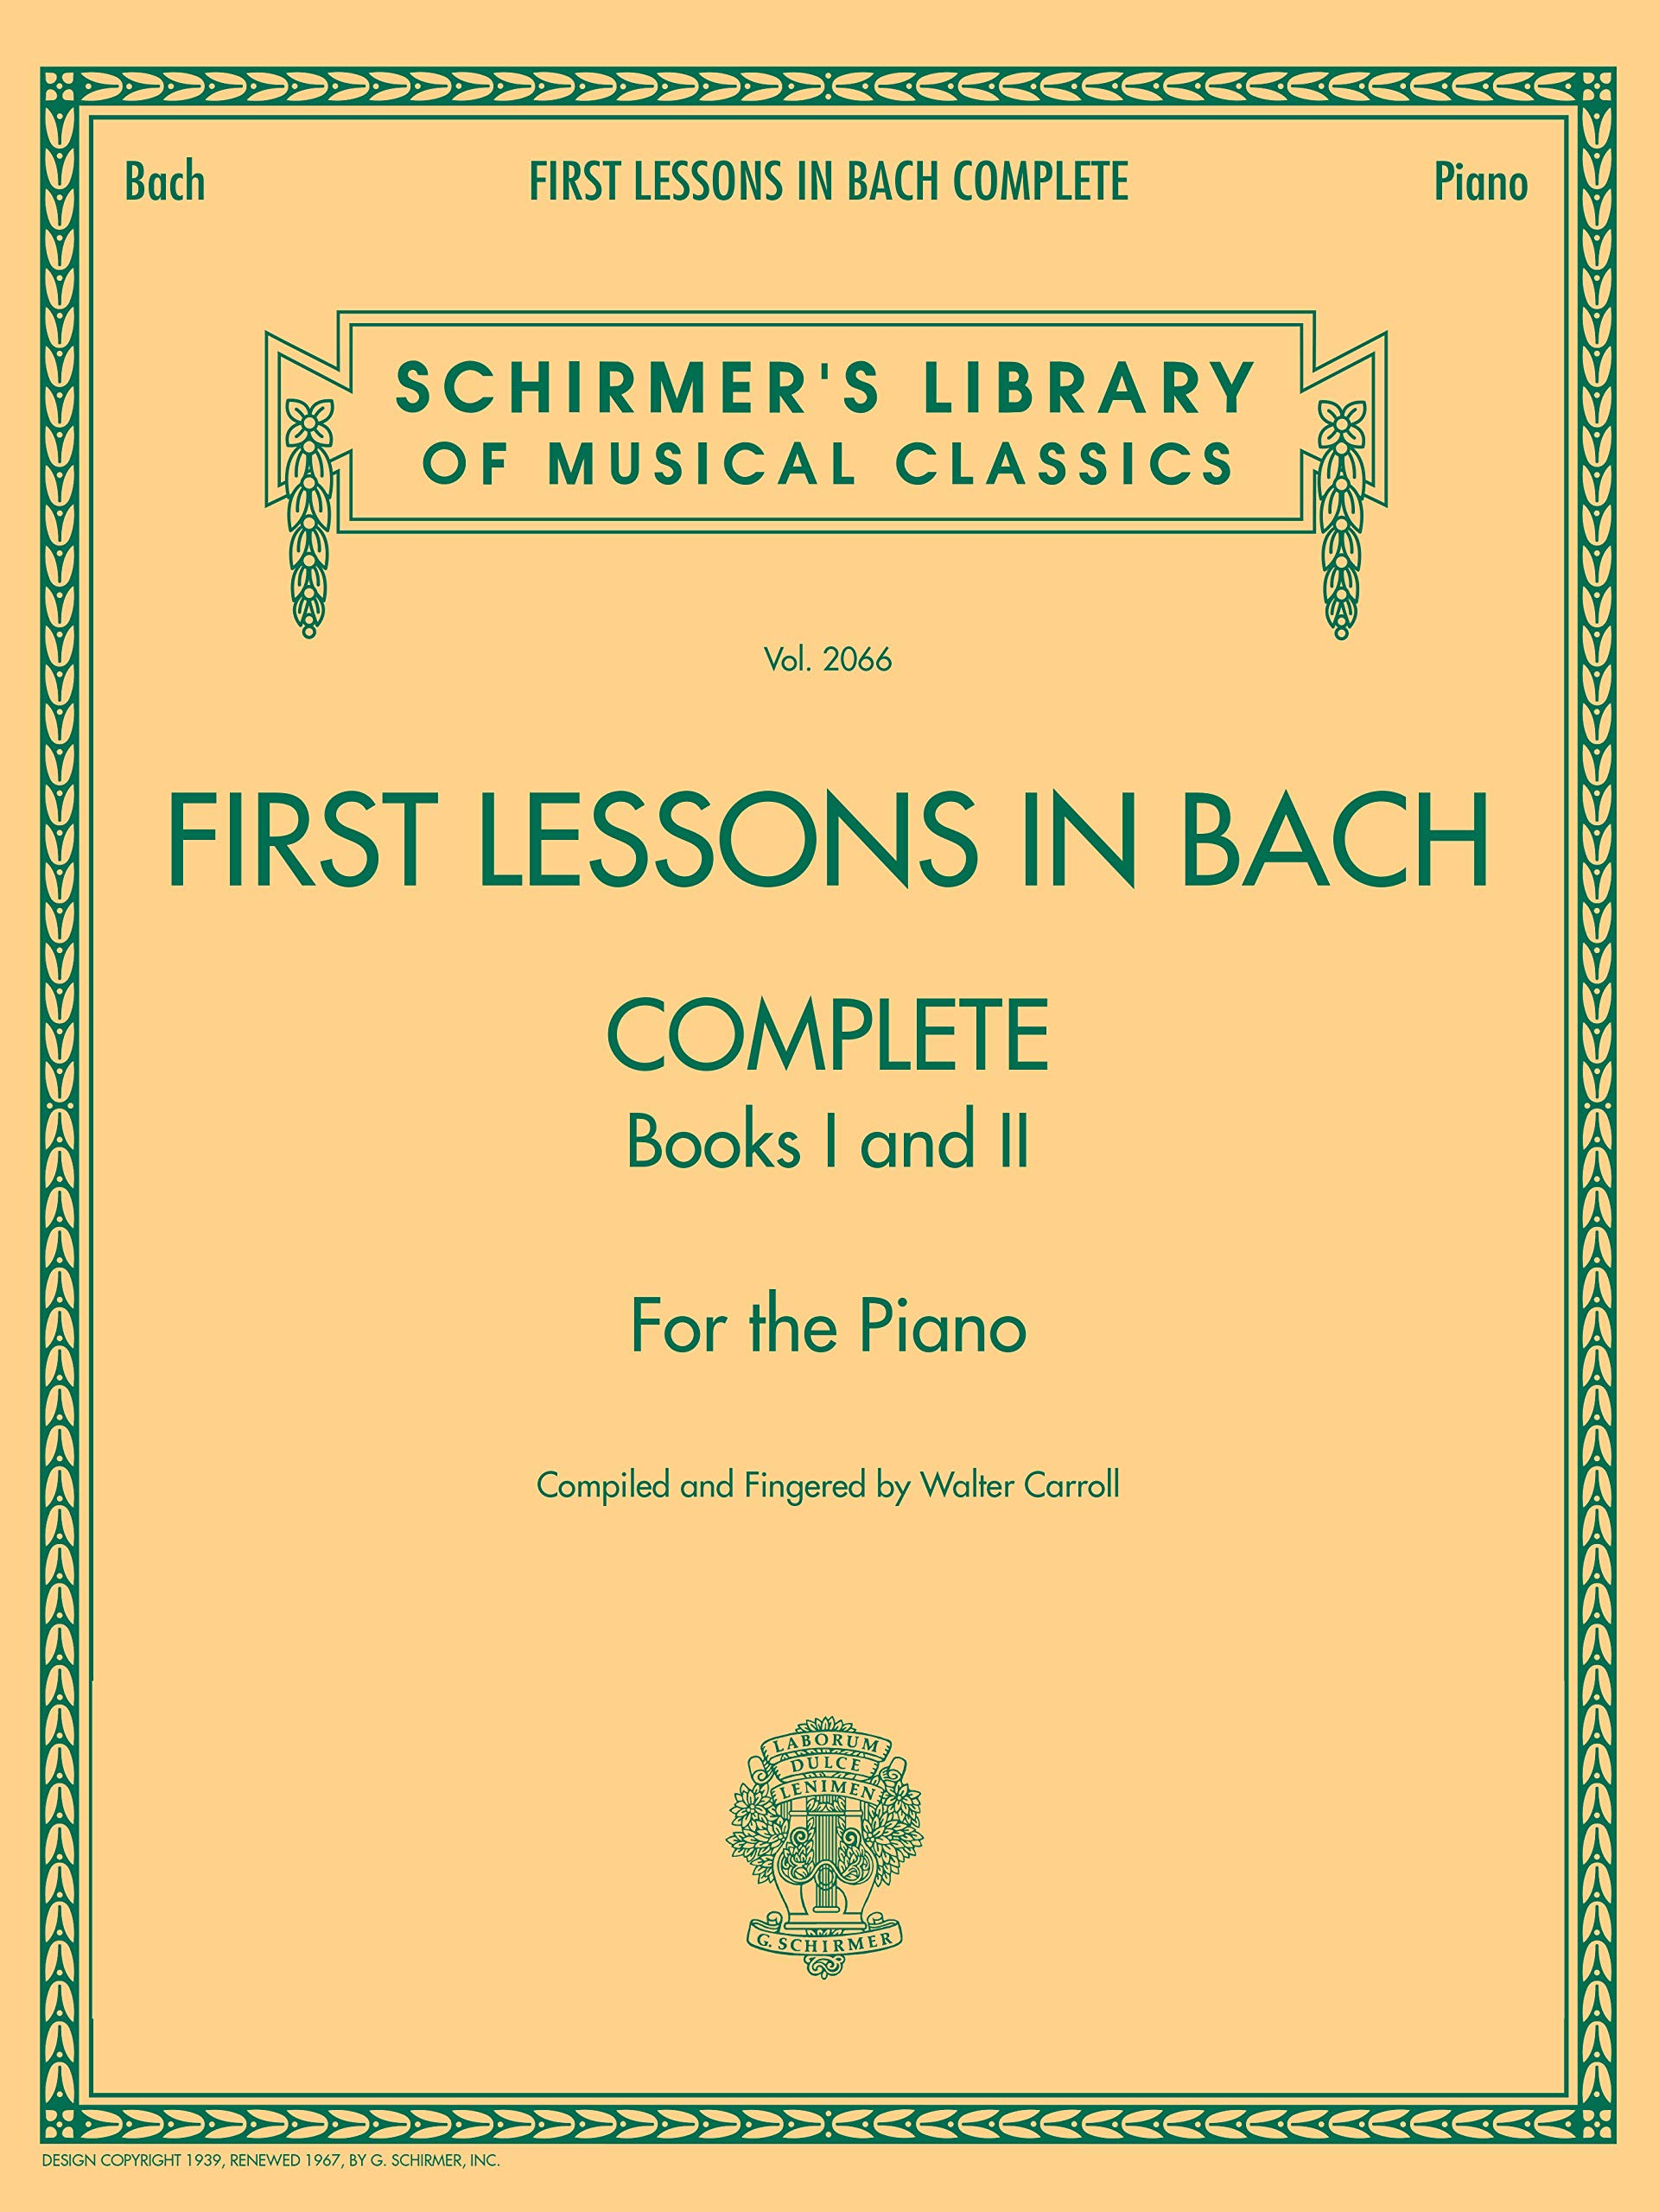 First Lessons in Bach: Schirmer Library of Classics Volume 2066 For the Piano